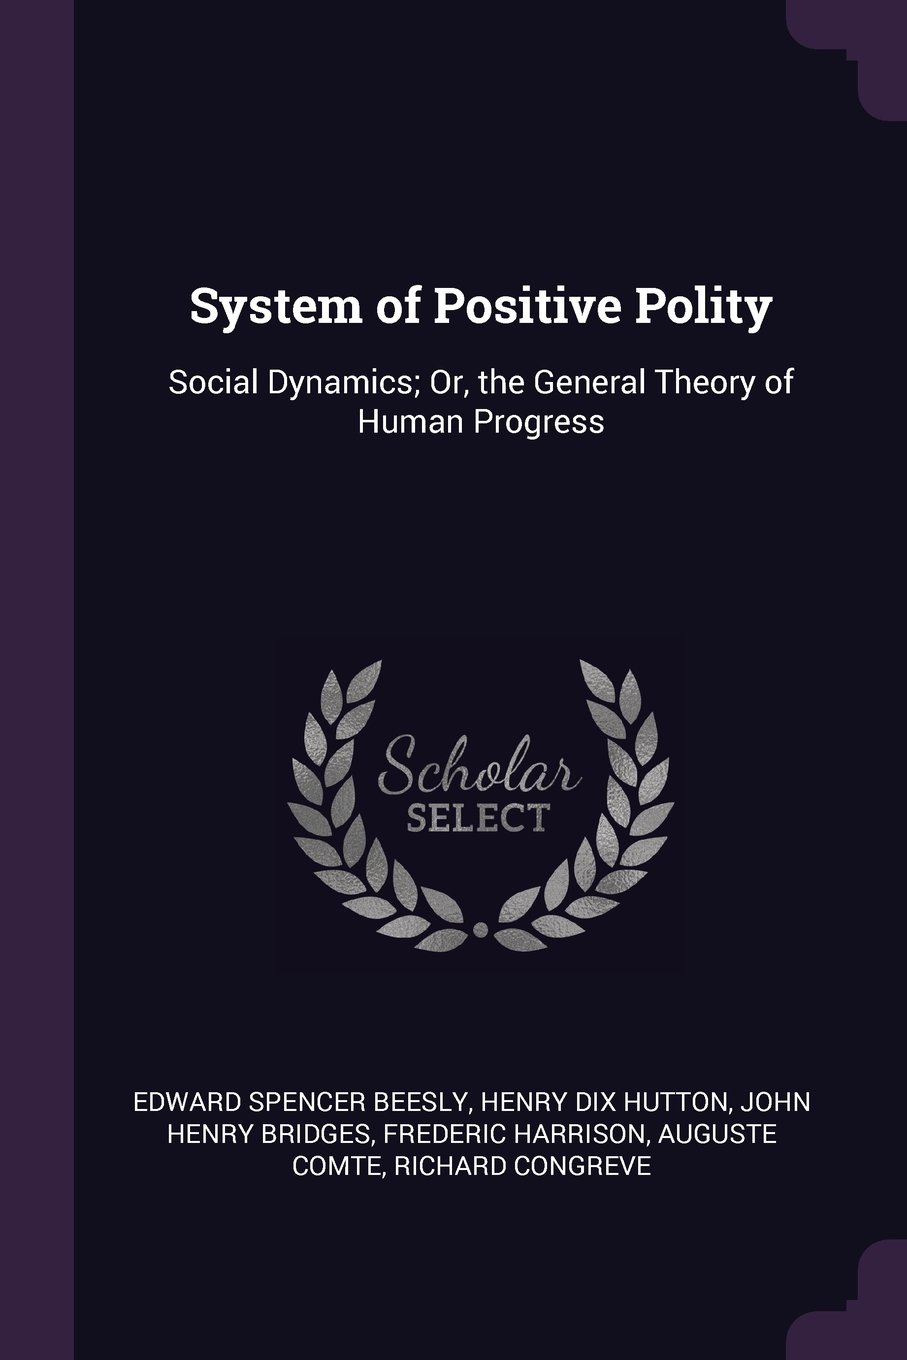 Download System of Positive Polity: Social Dynamics; Or, the General Theory of Human Progress ebook